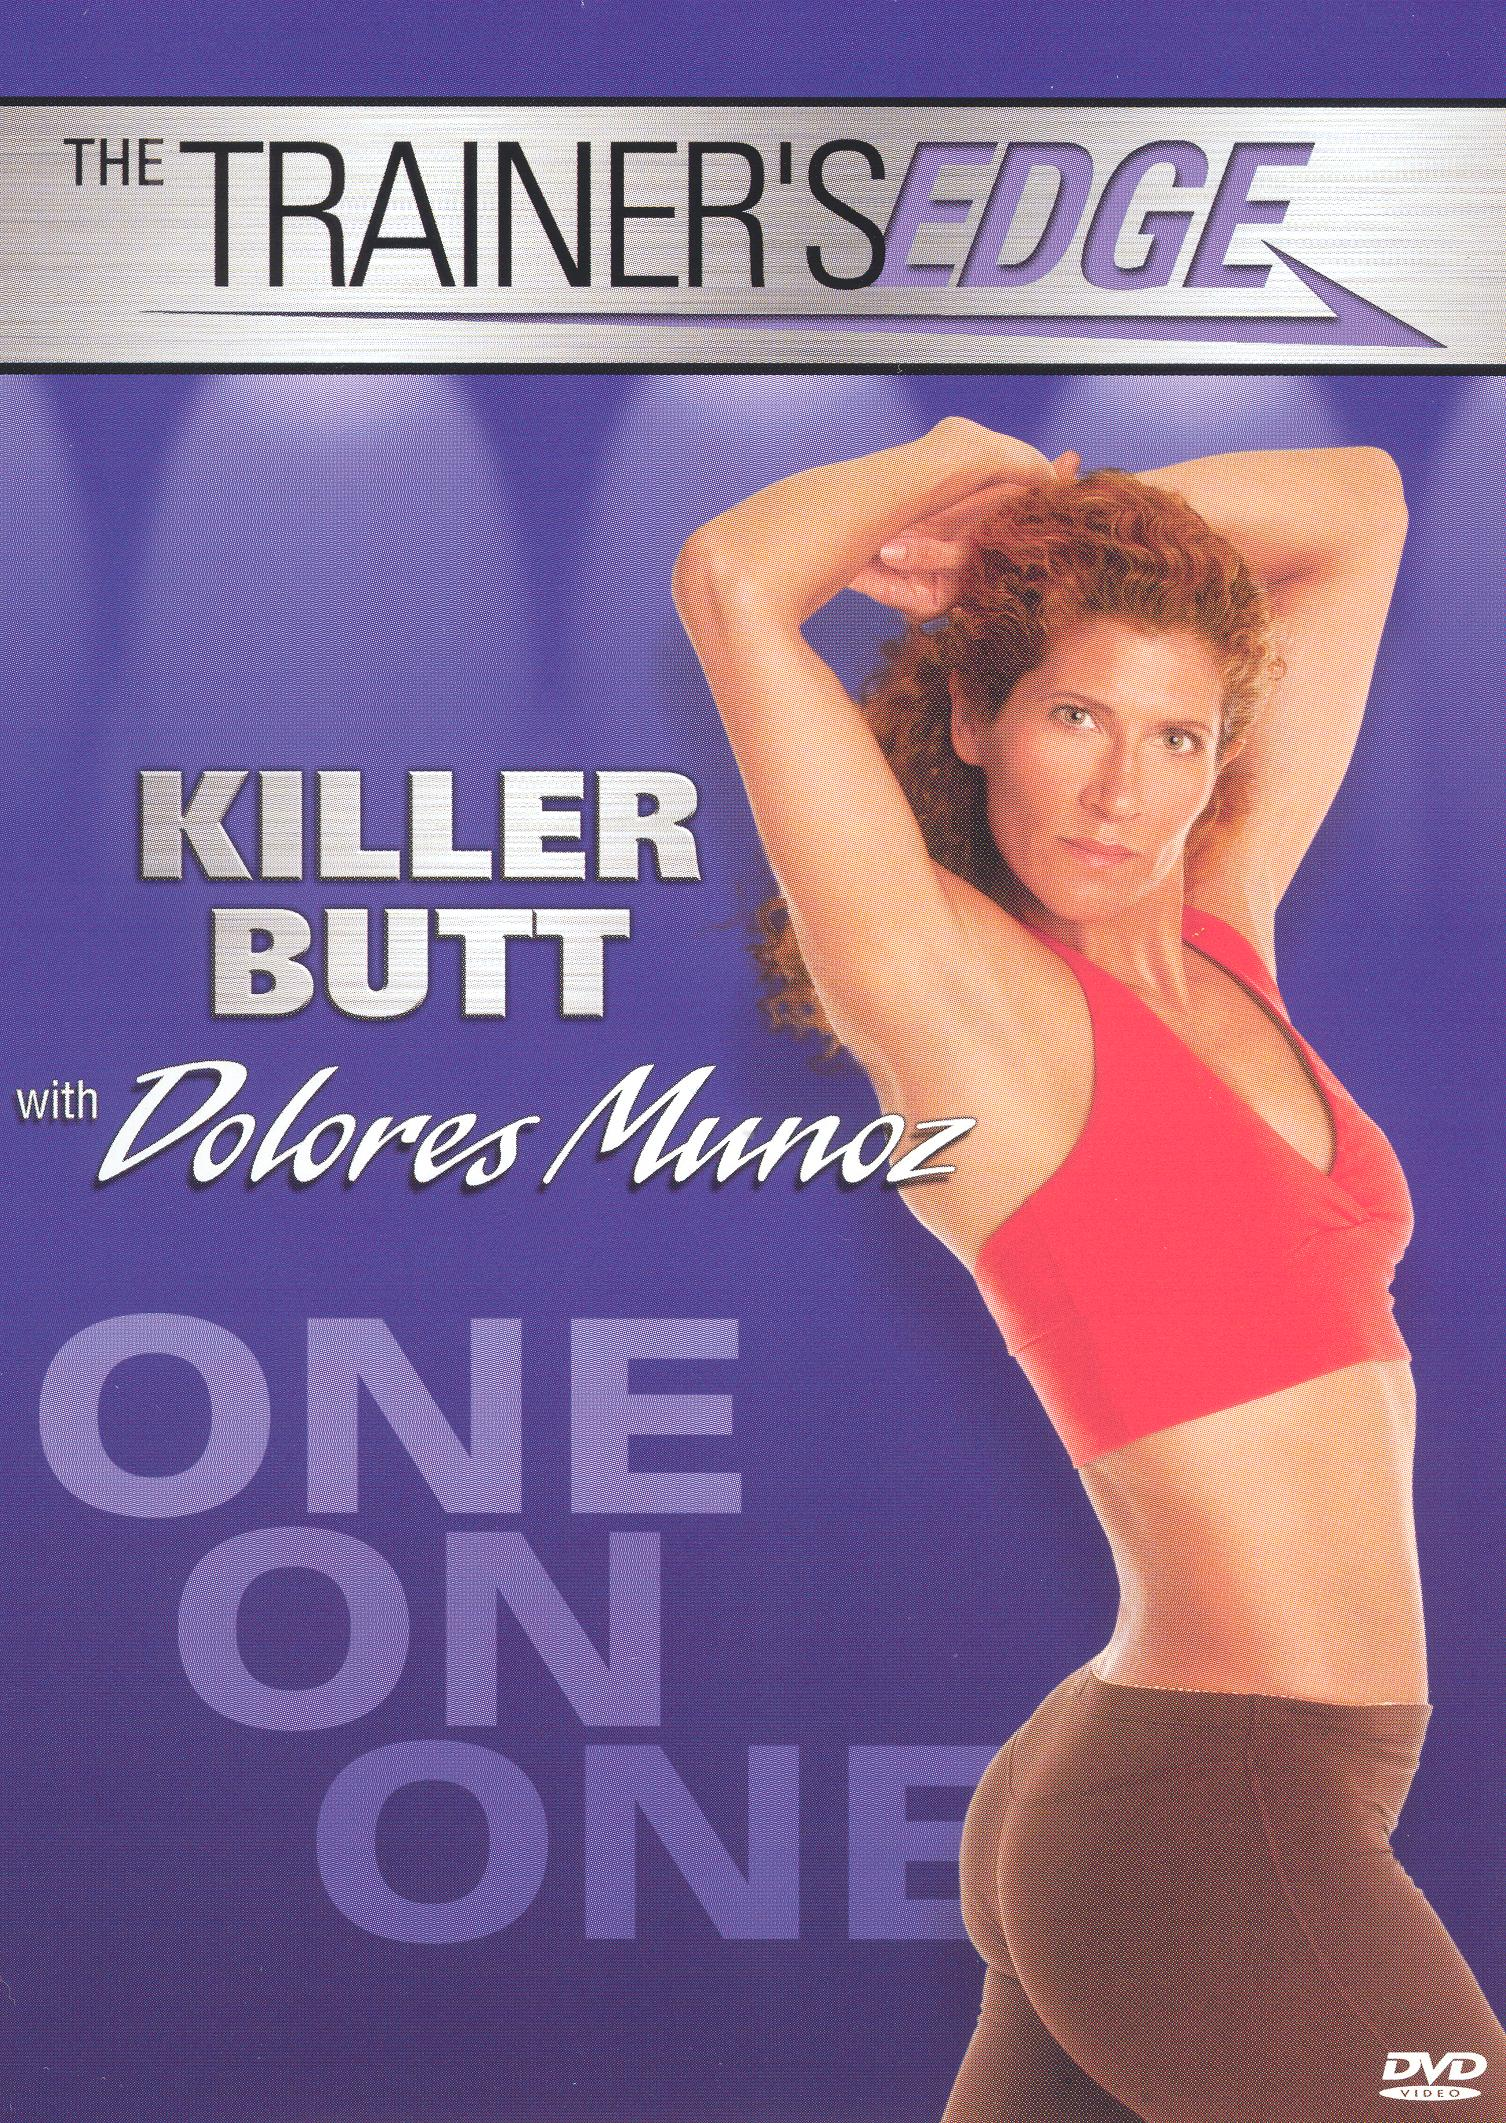 The Trainer's Edge: Killer Butt